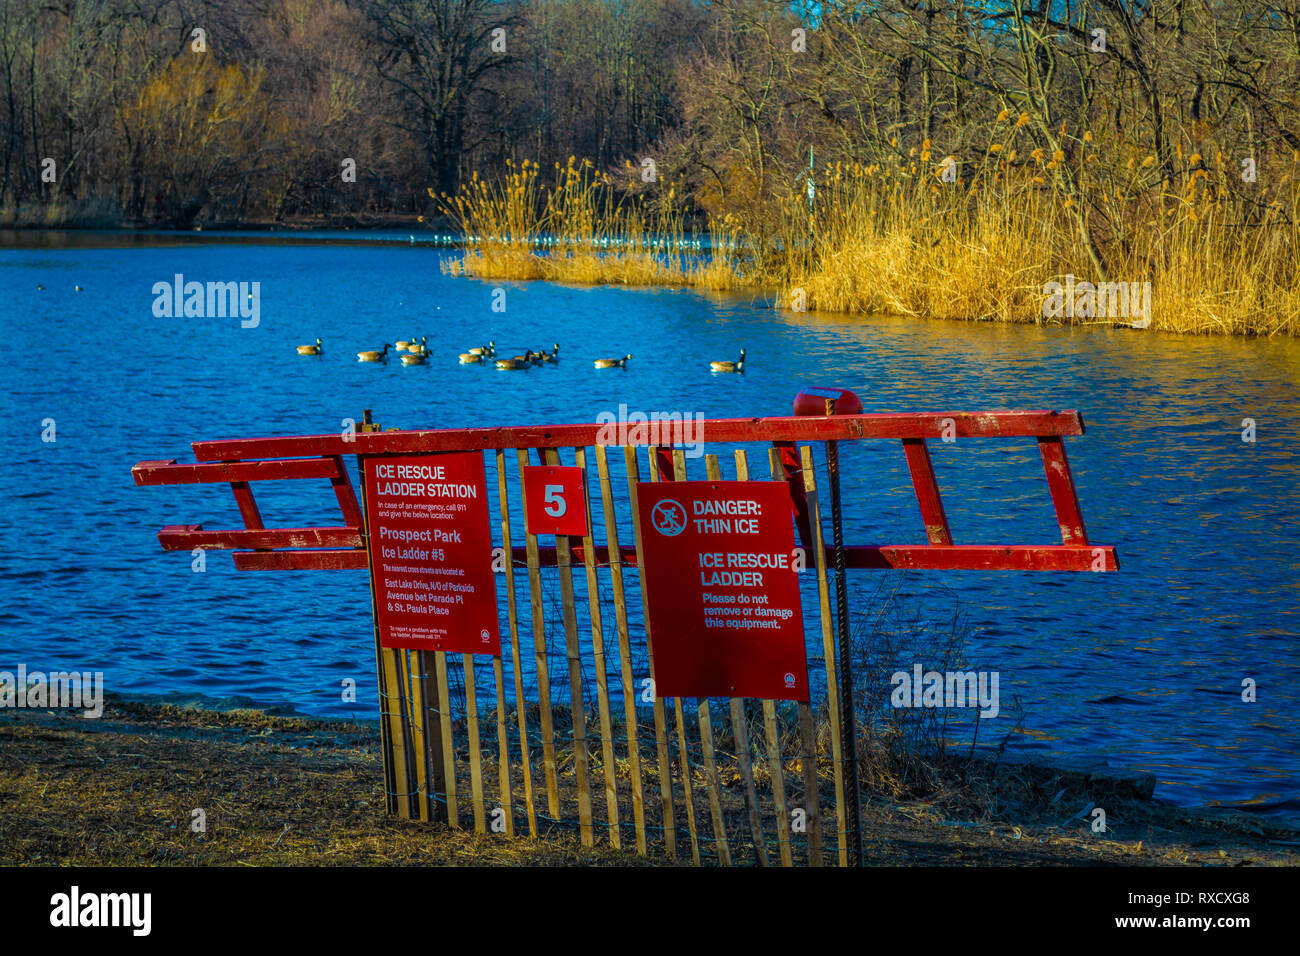 Danger thin ice emergency rescue ladder near the Prospect Park pond, Brooklyn New York, Spring 2019 - Stock Image